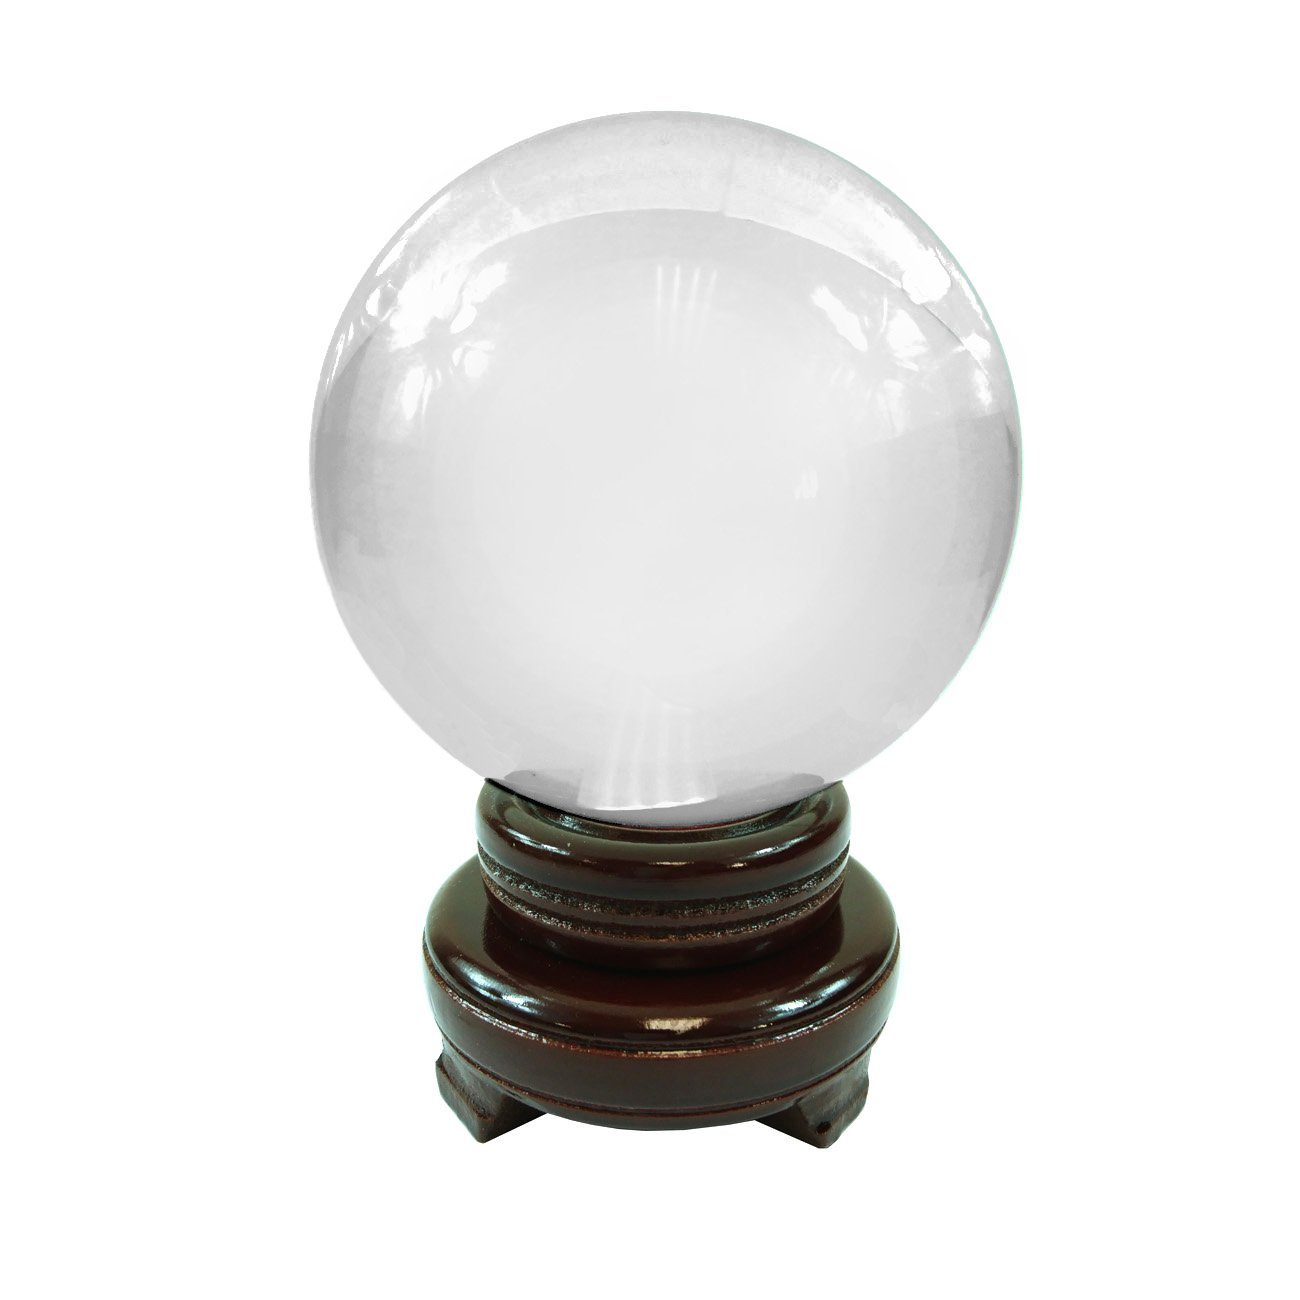 Hongville Feng Shui and Home Decor Solid Clear Glass Crystal Ball Sphere With Wooden Stand (Clear, 60MM)